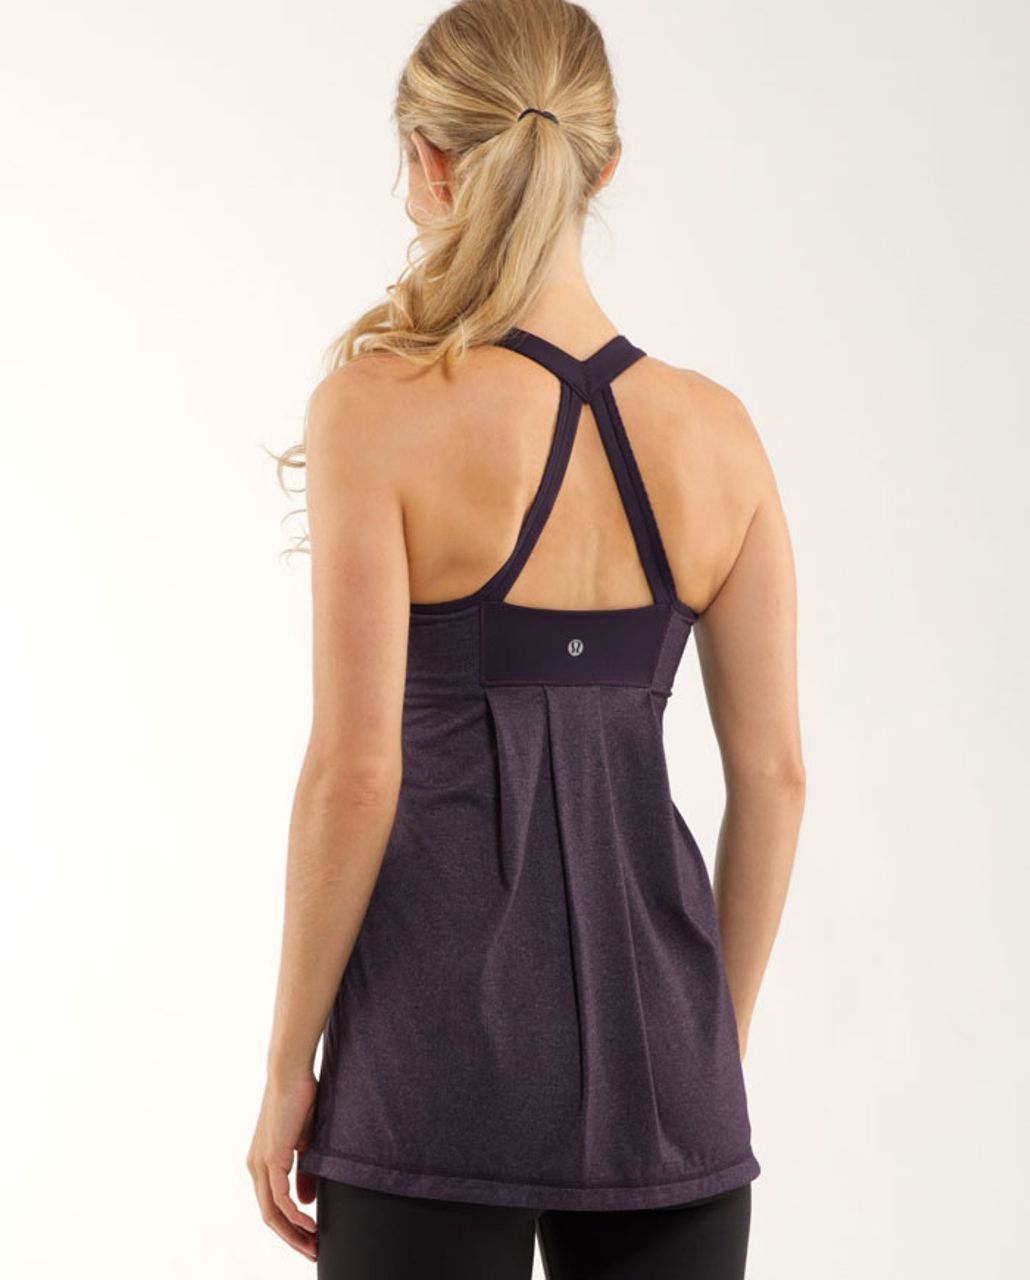 Lululemon Power Technique Tank - Black Swan